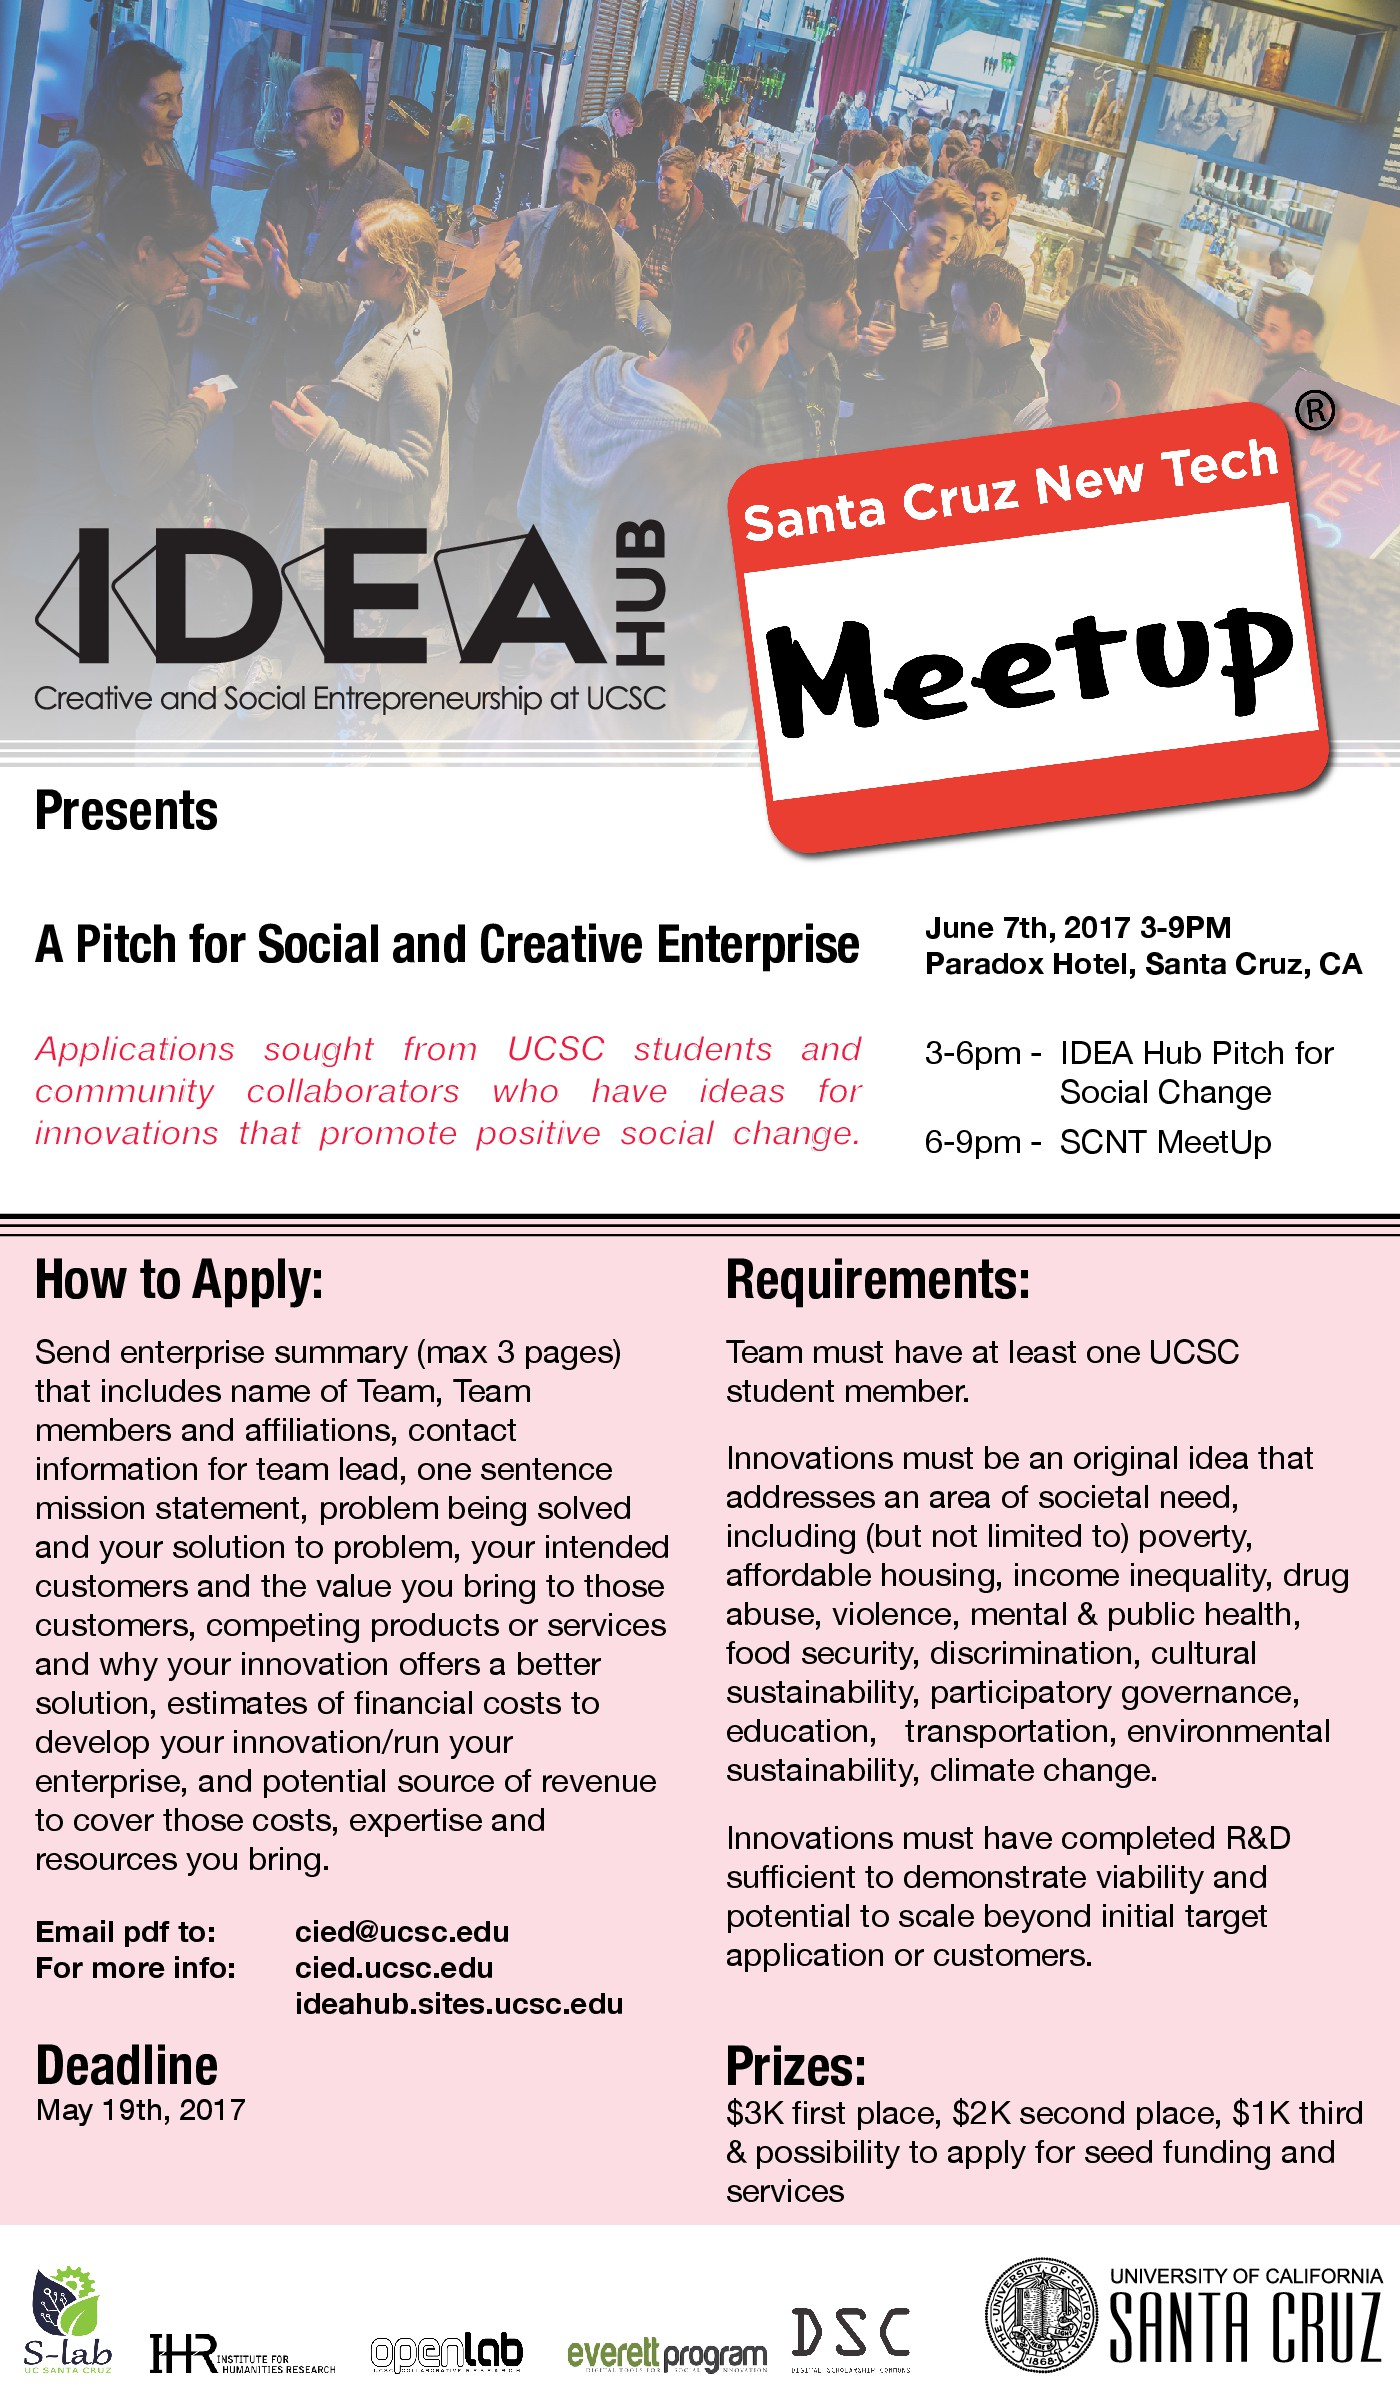 IDEA Hub: A Pitch for Social and Creative Enterprise - The